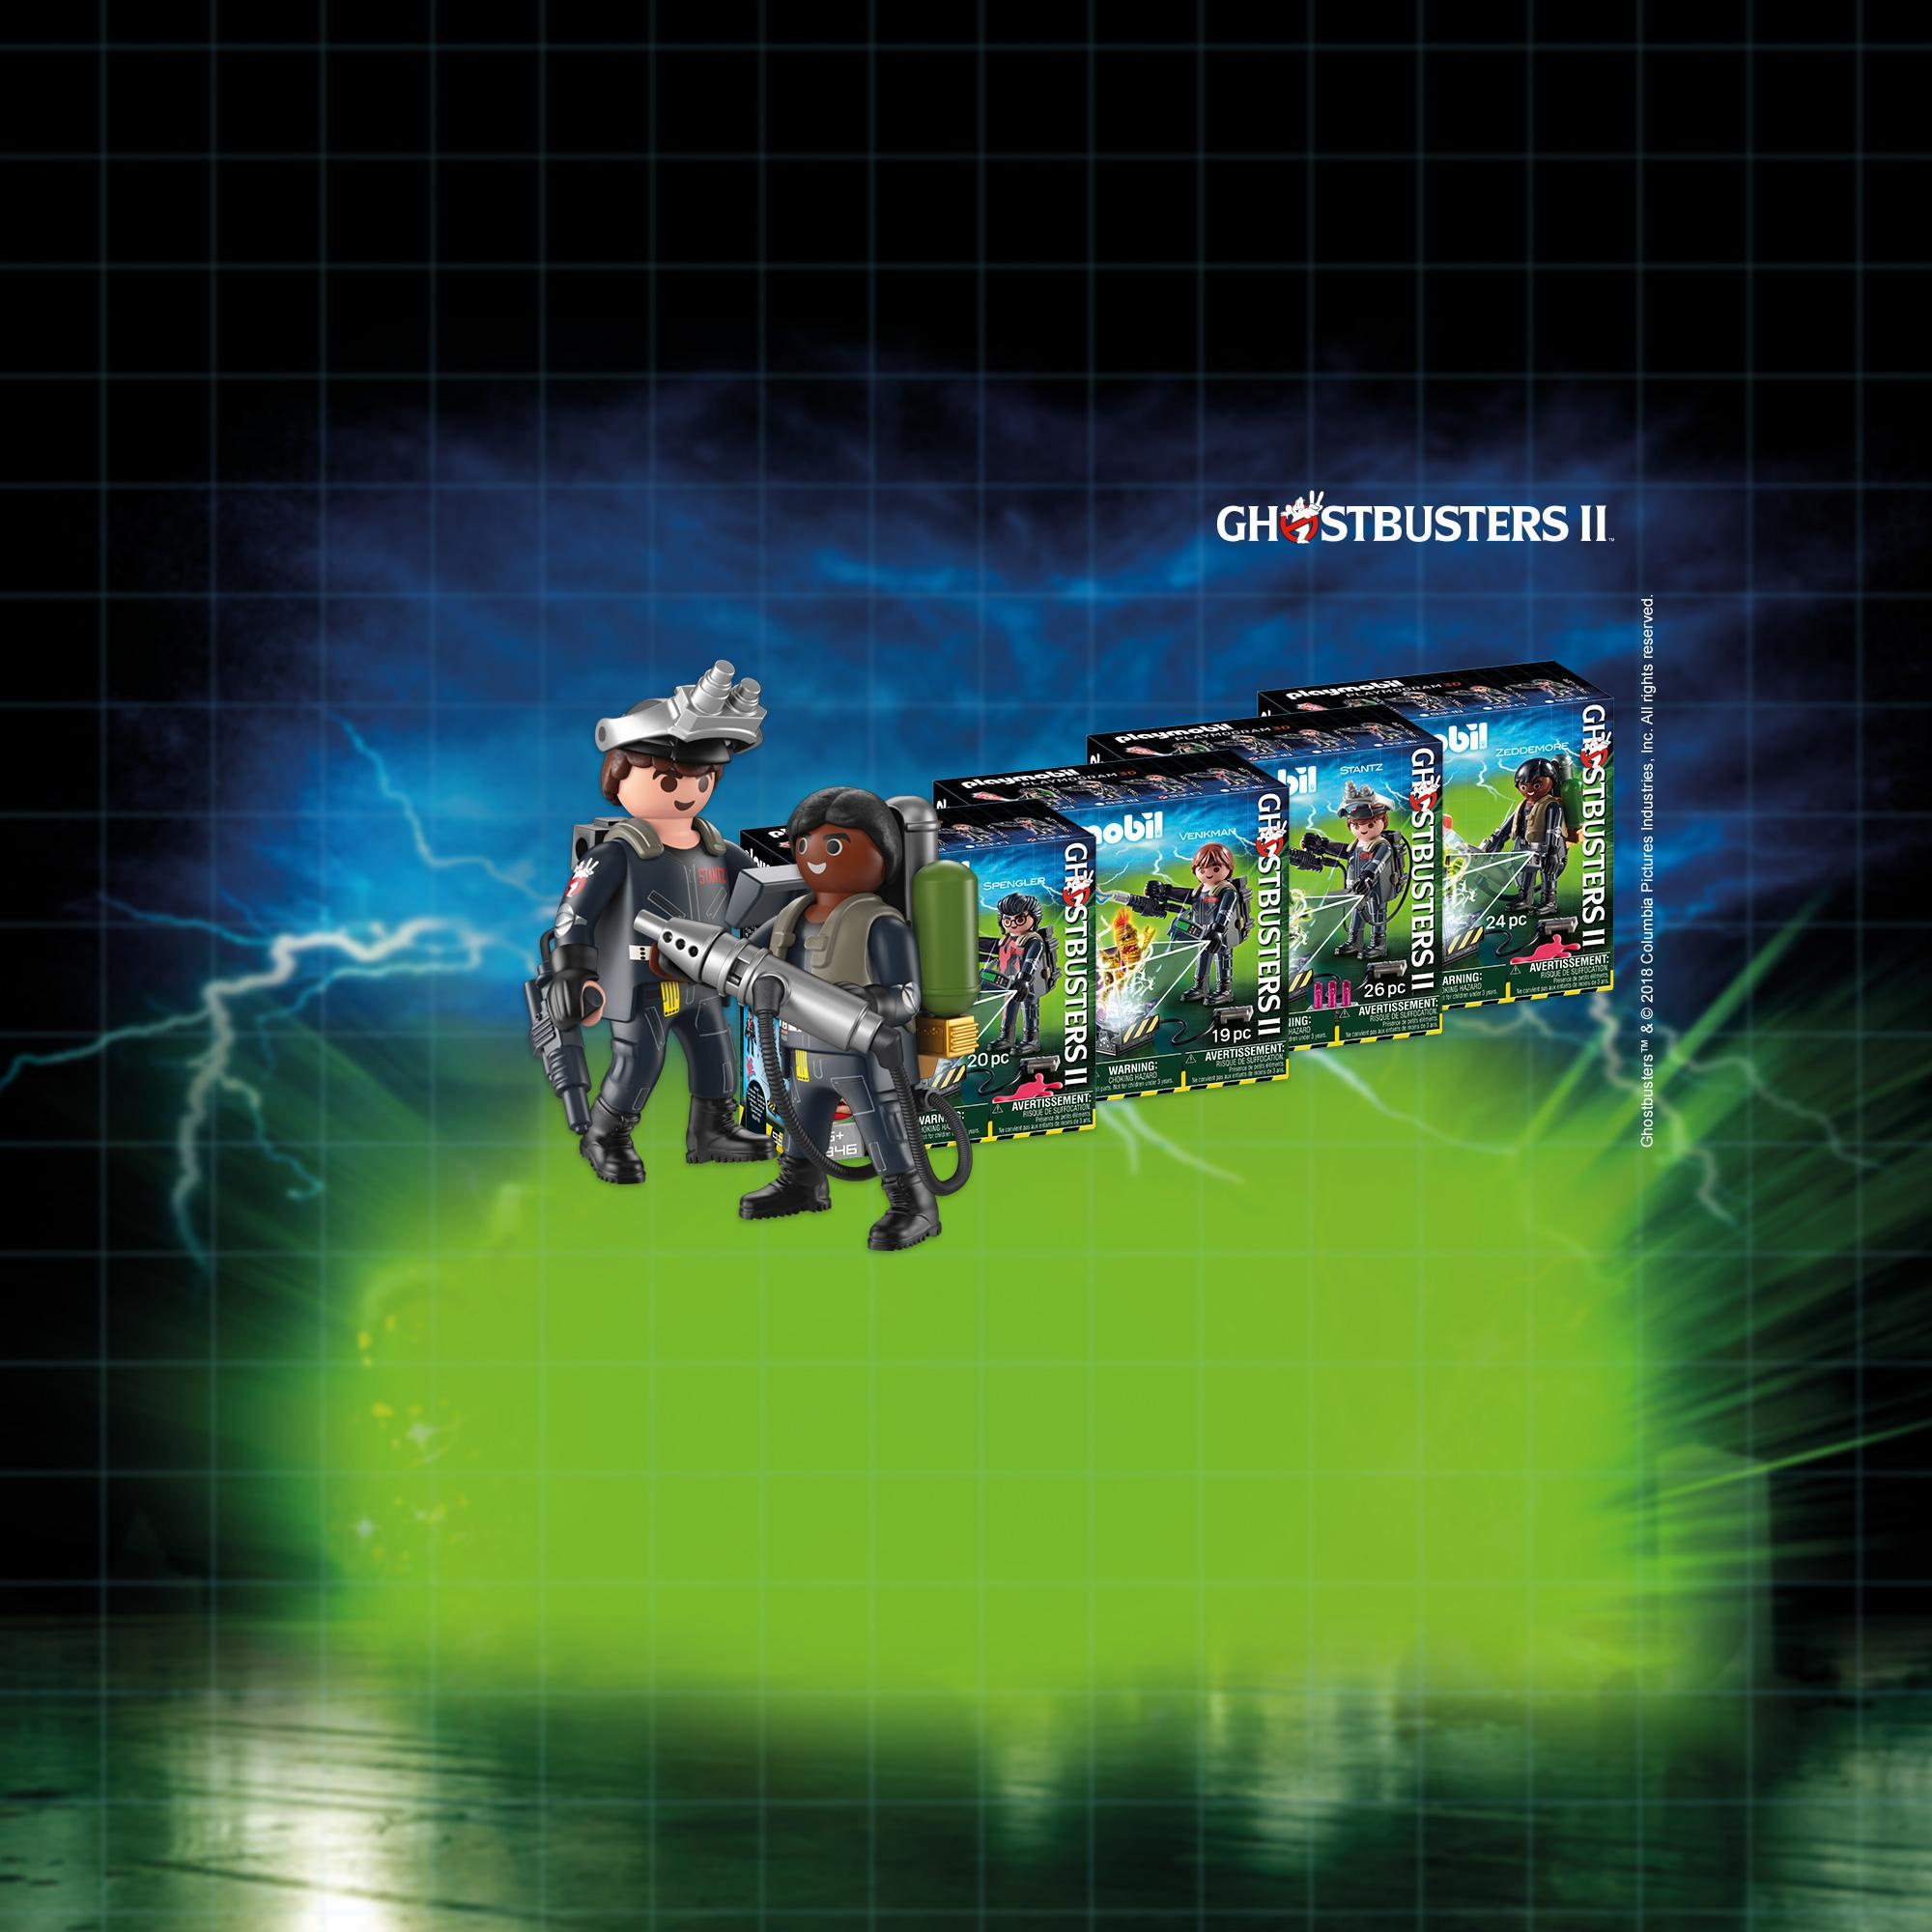 SHOP_GHOSTBUSTERS_PLAYMOGRAMM_2018_3X2_US